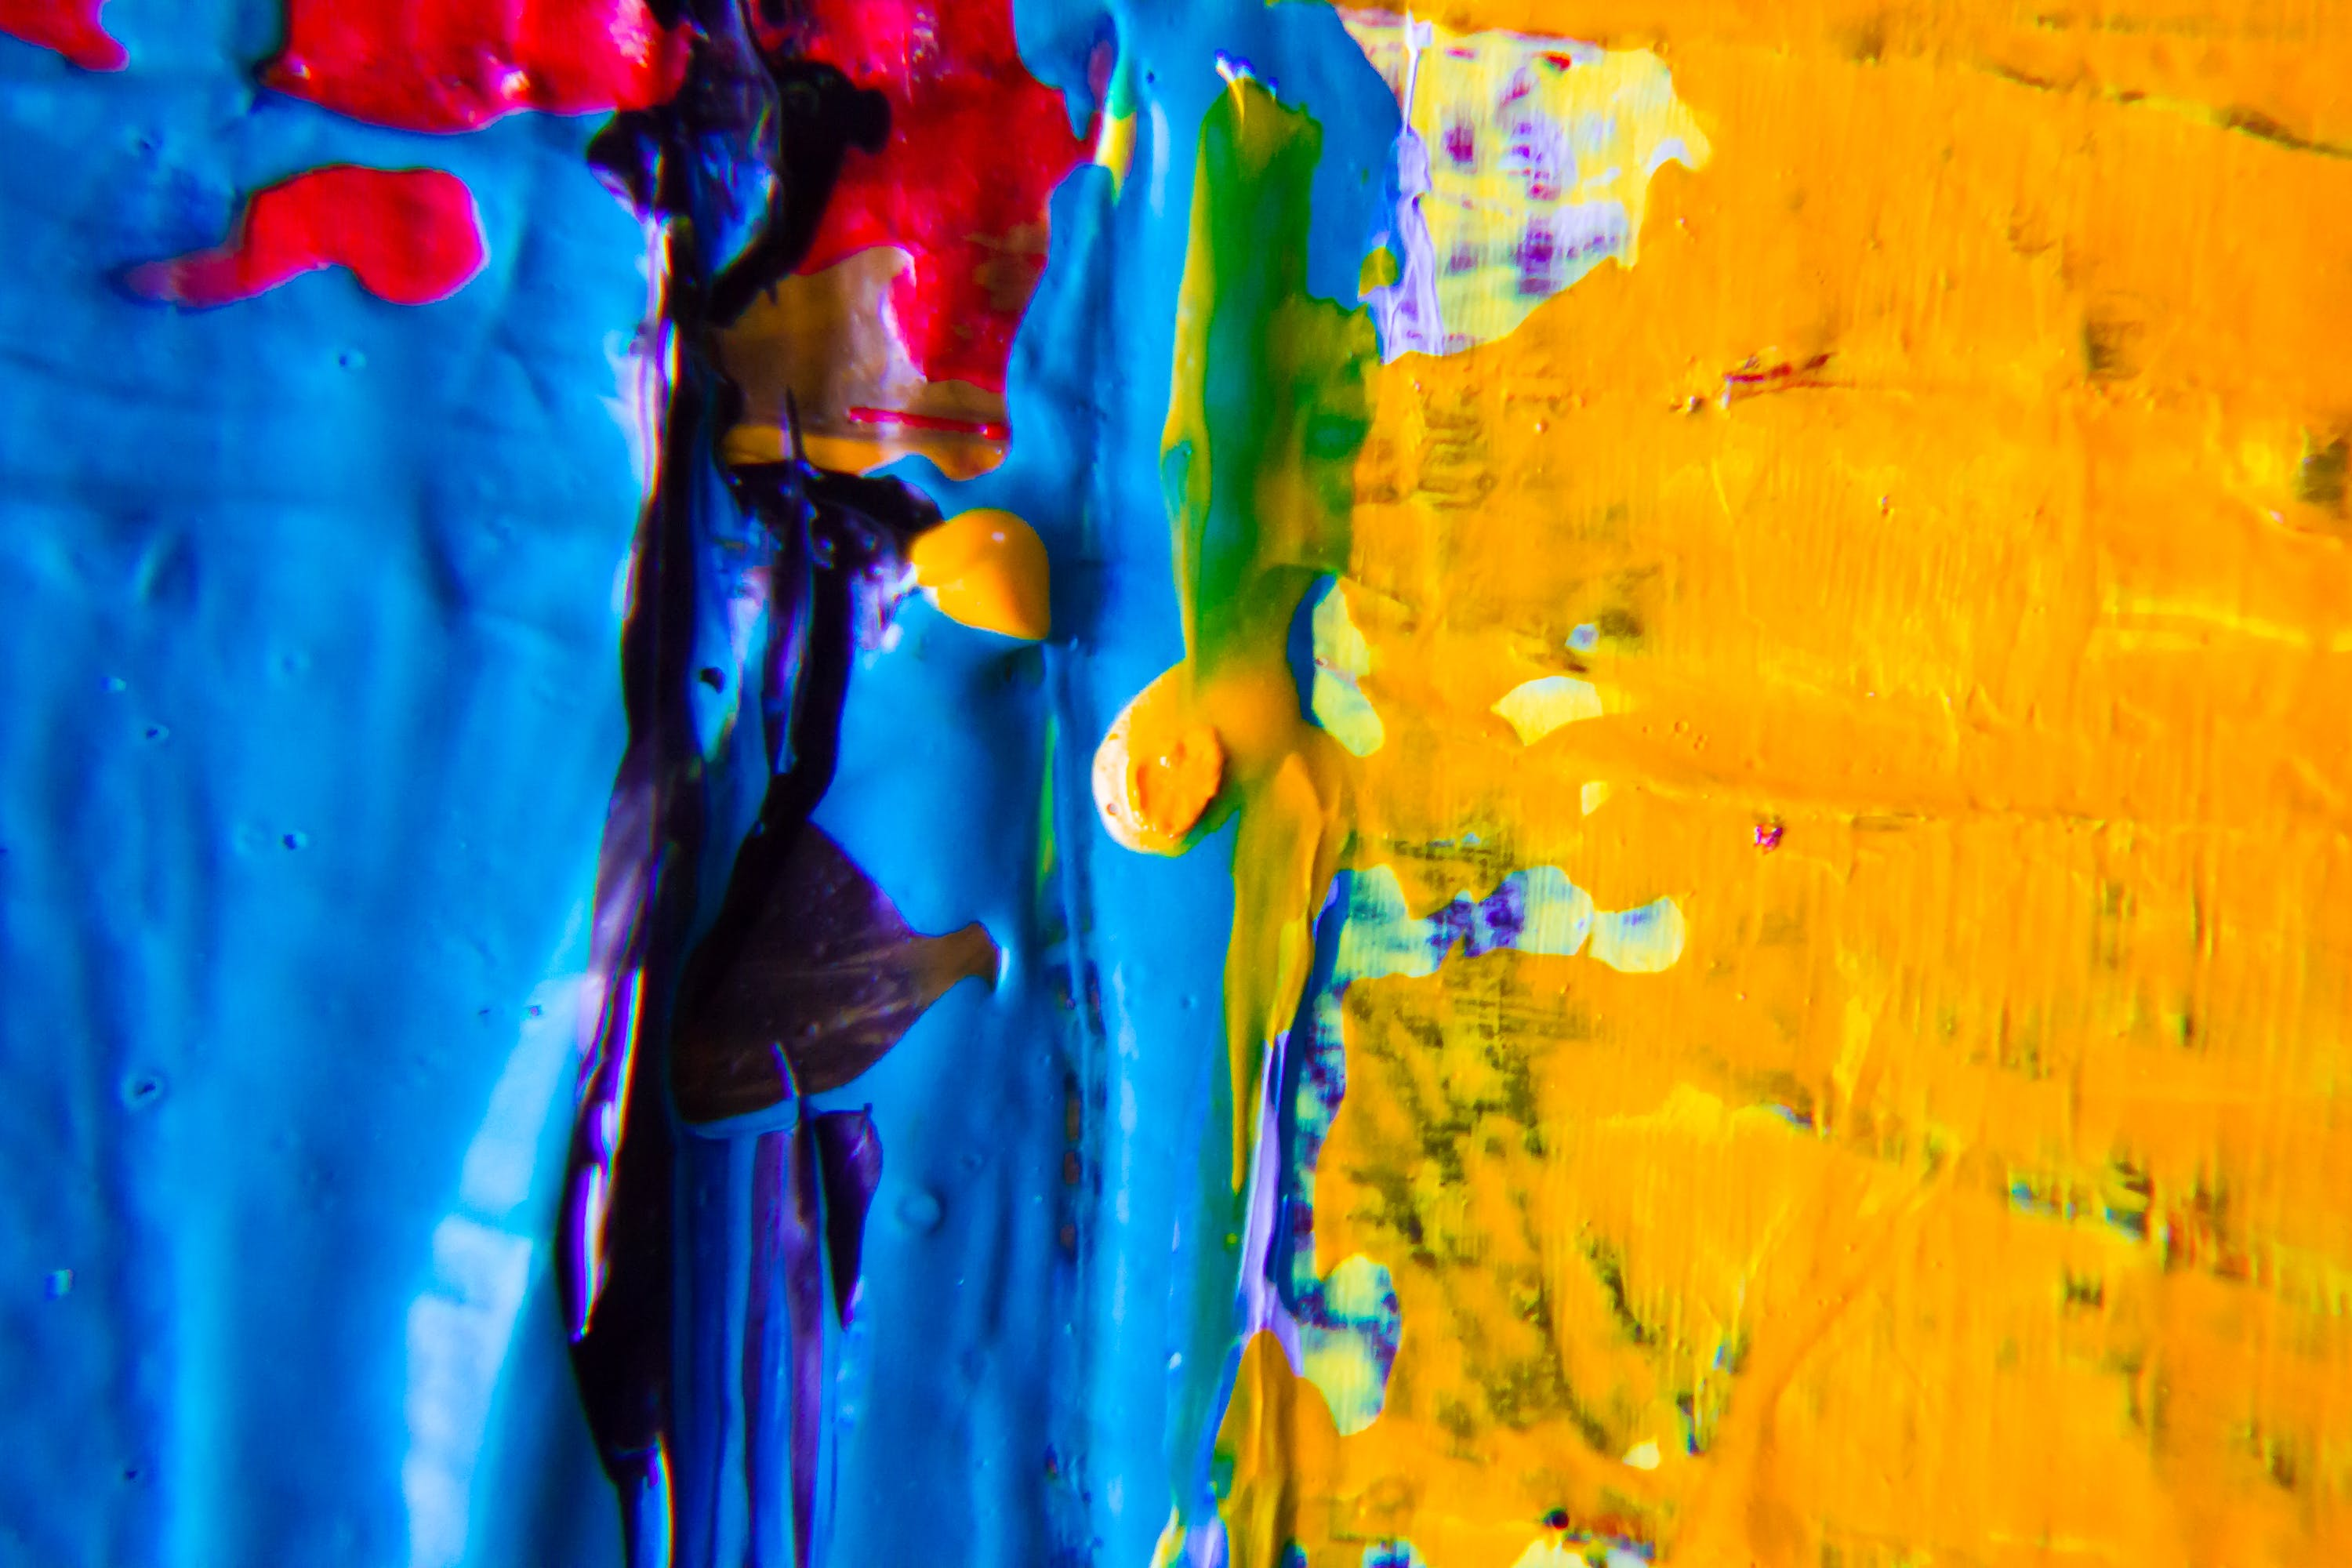 Free stock photo of abstract expressionism, acrylic paint, background, contemporary art